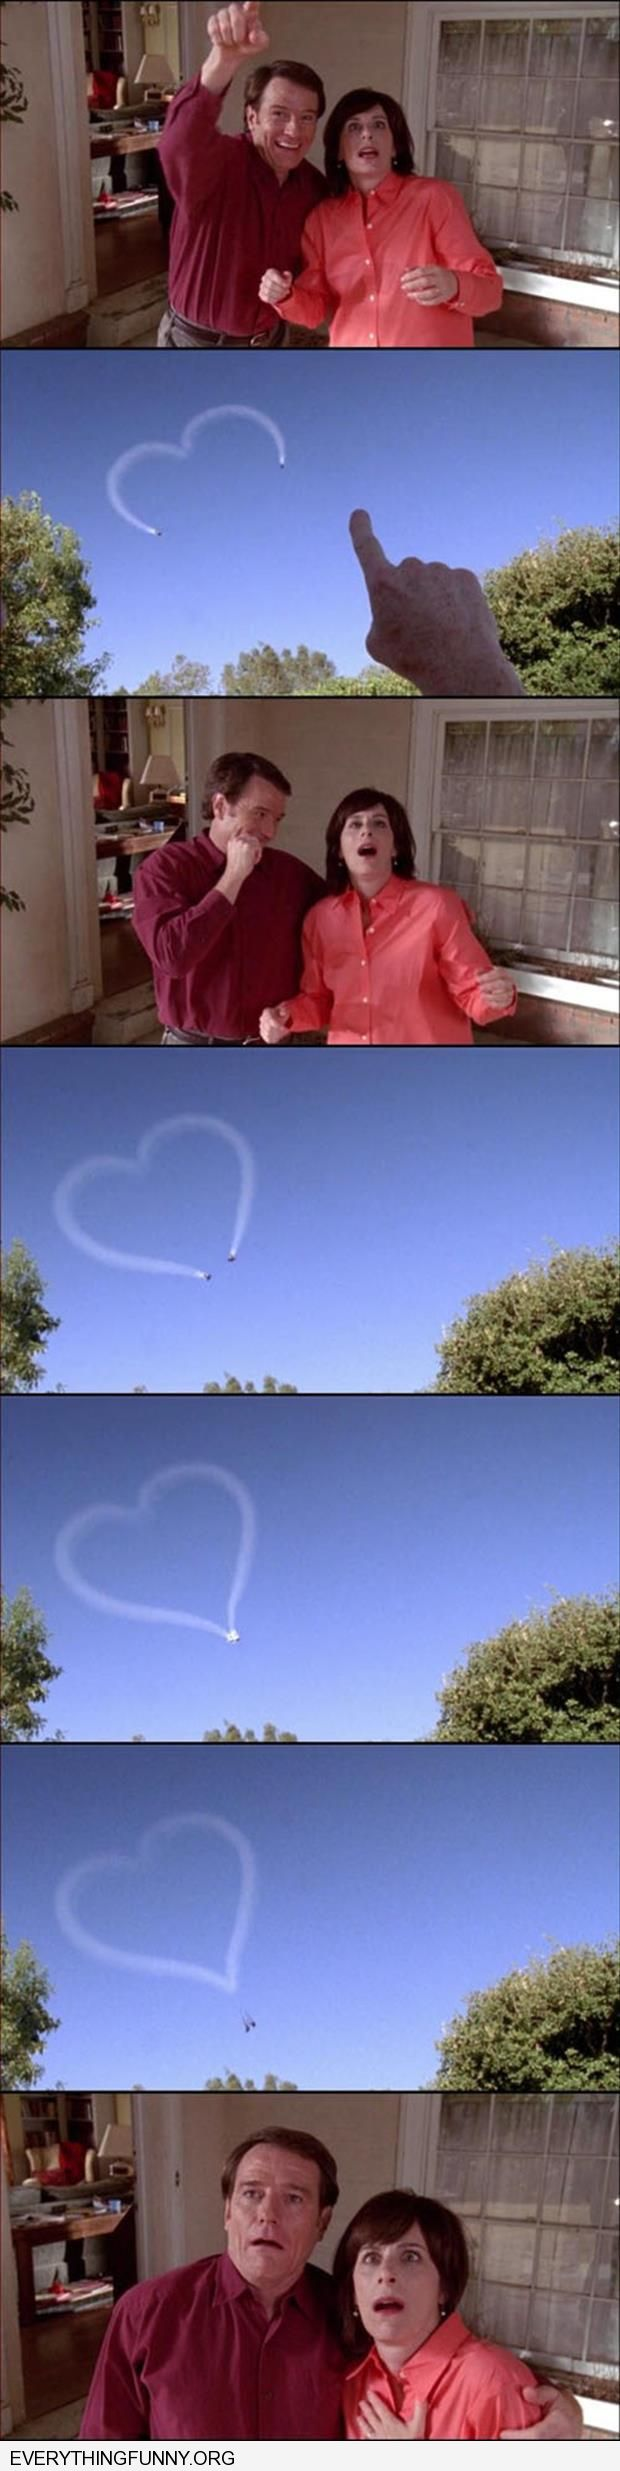 funny caption malcolm in the middle two planes making heart skywriting crash